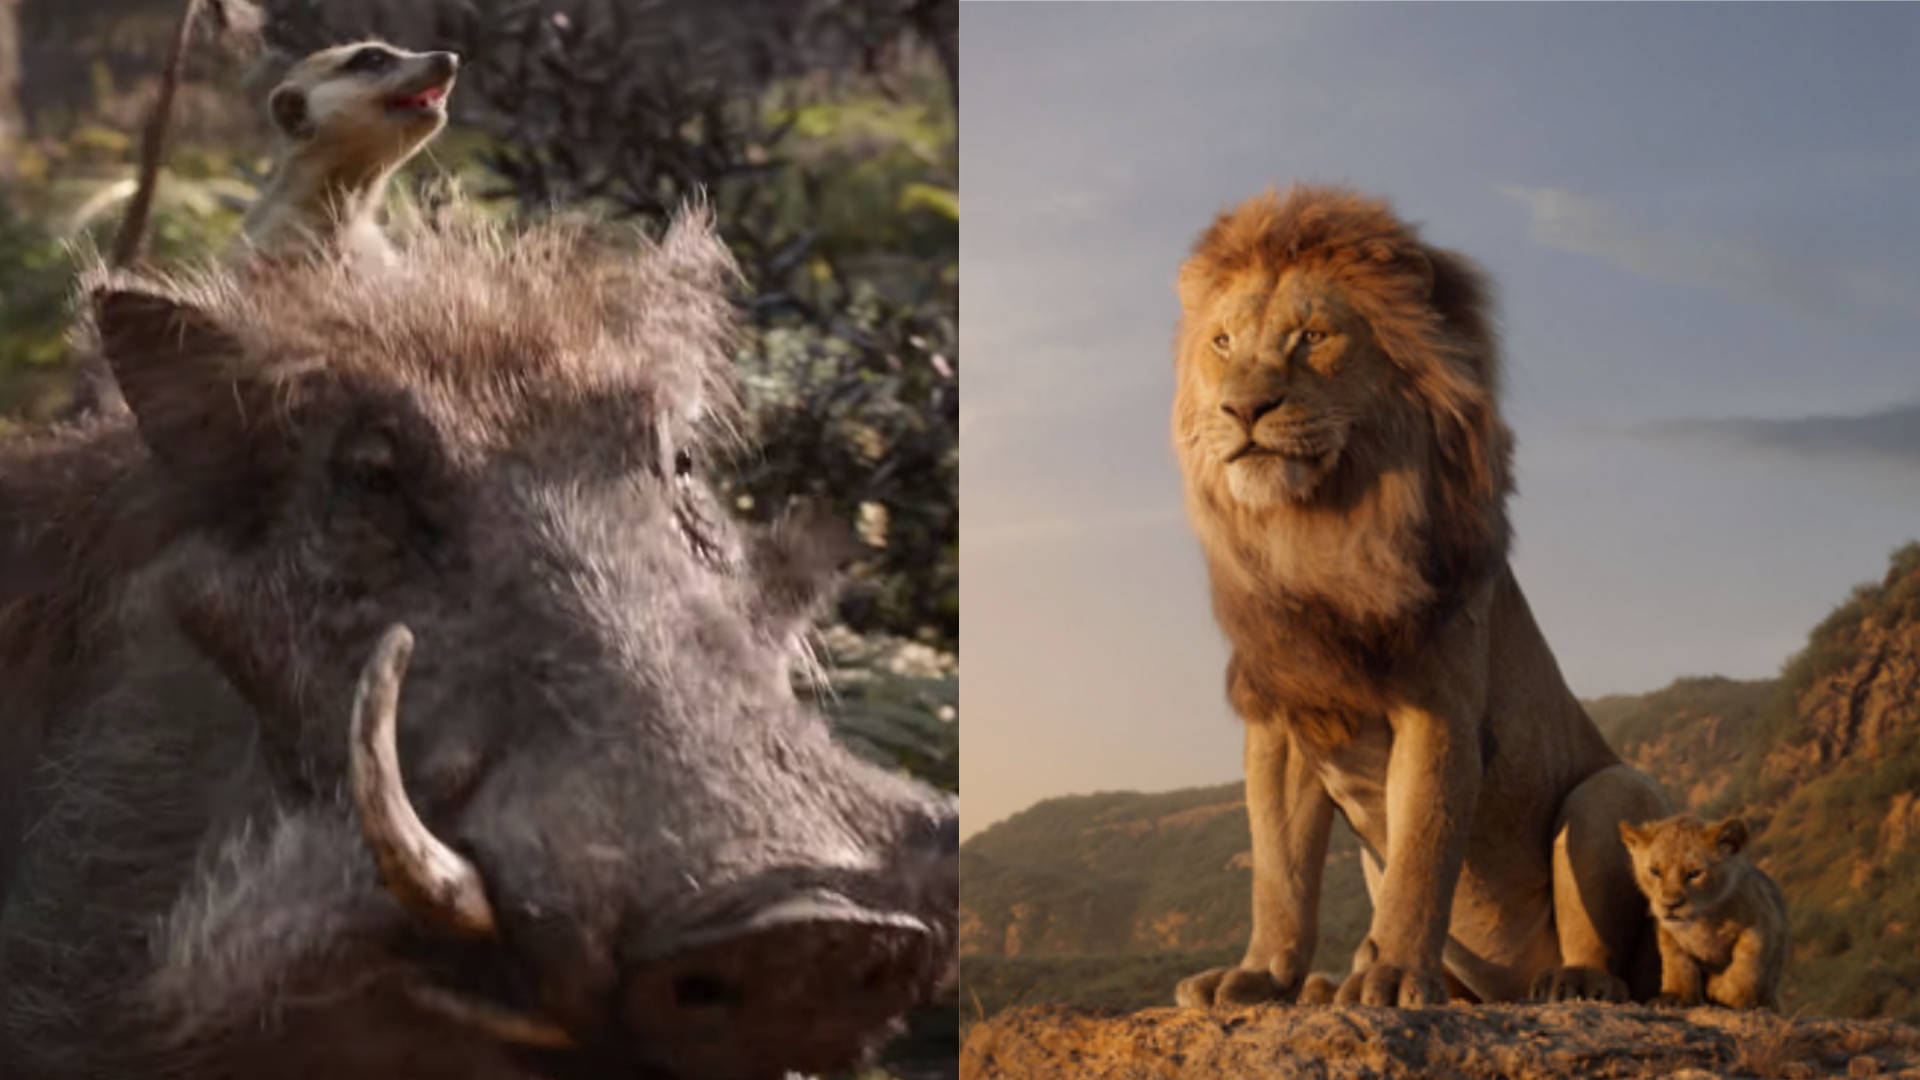 The Lion King Trailer Watch The Stunning New Trailer